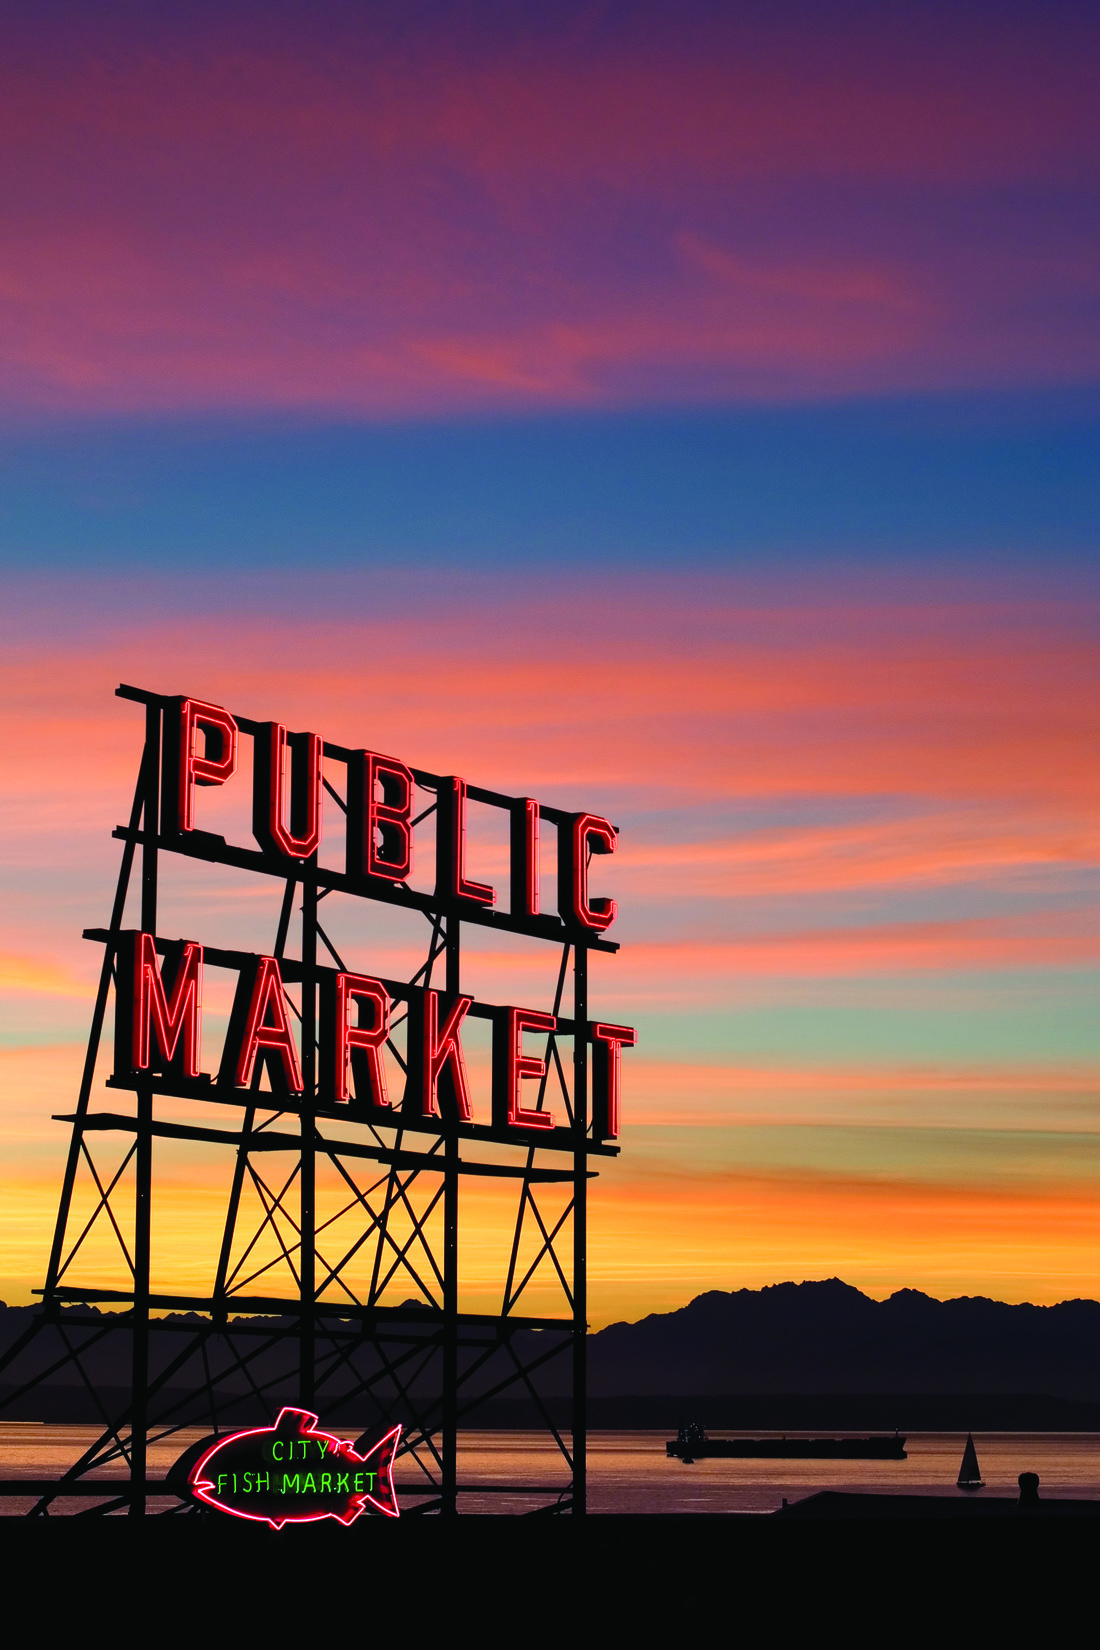 Public Market red neon sign at sunset